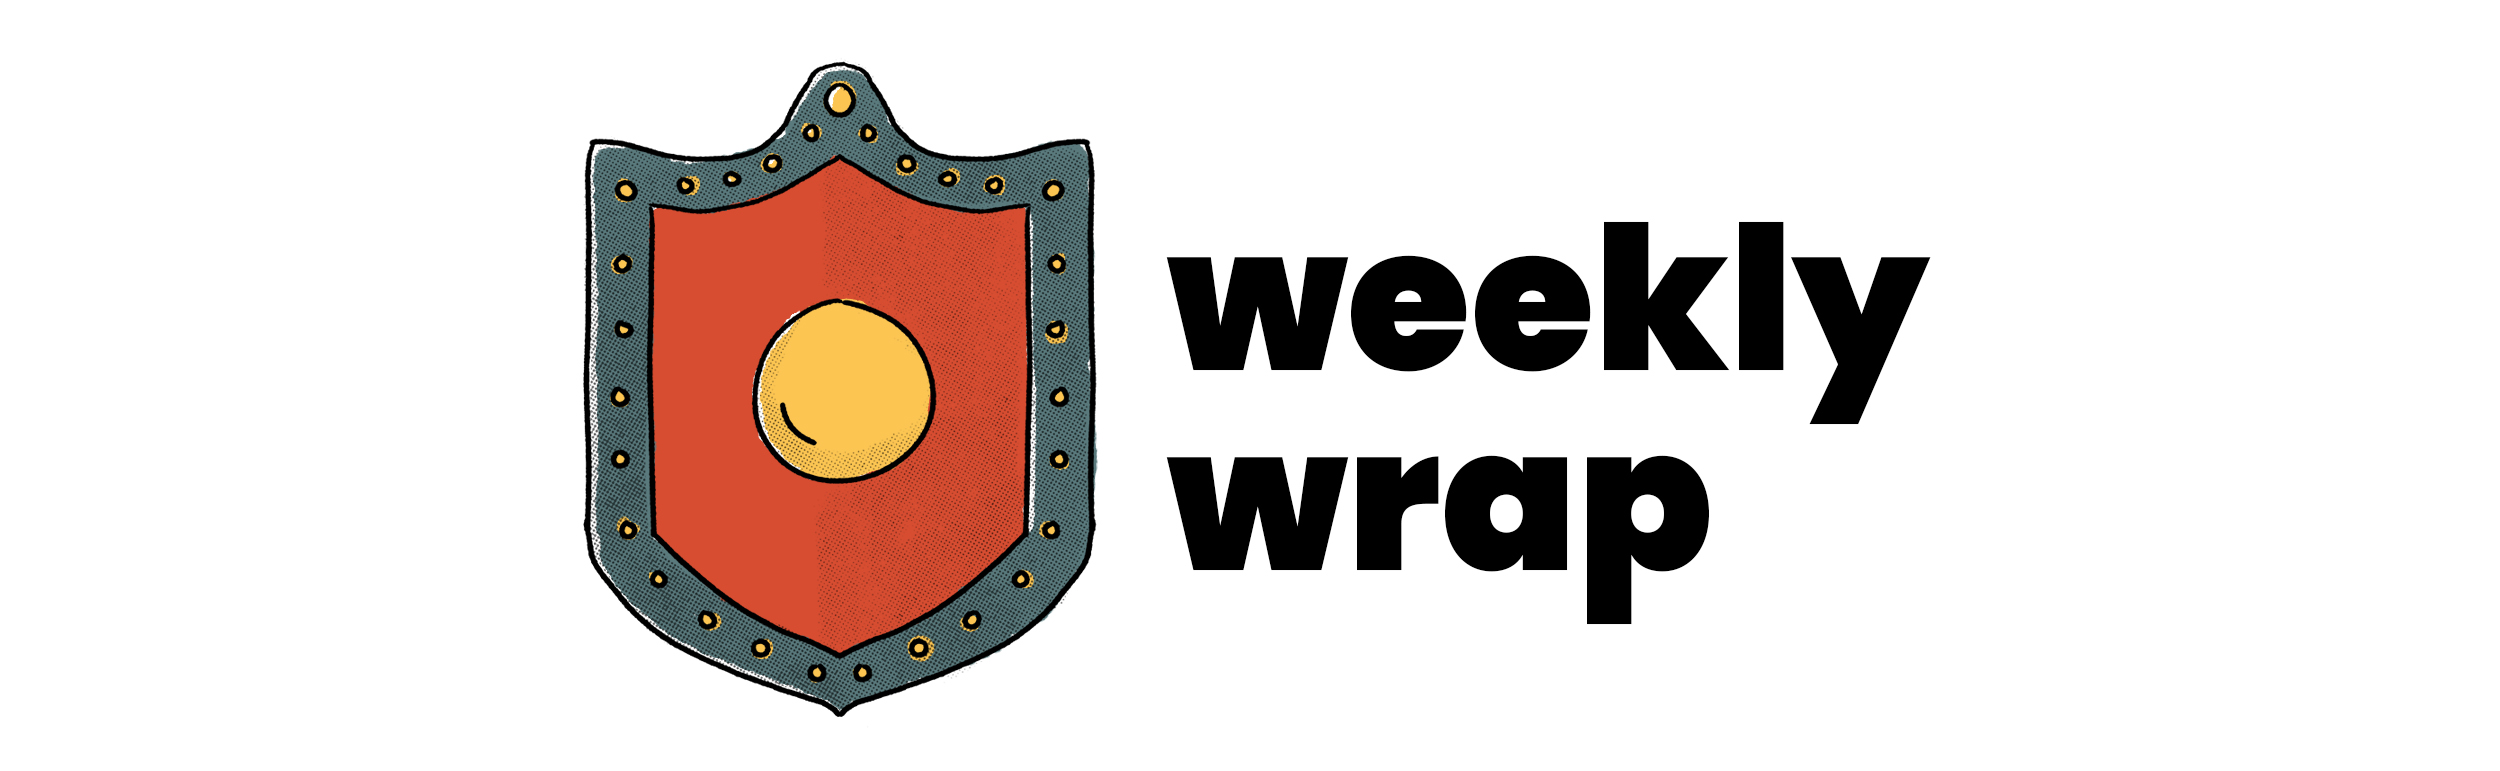 Weekly Wrap banner showing red shield with blue border and gold center